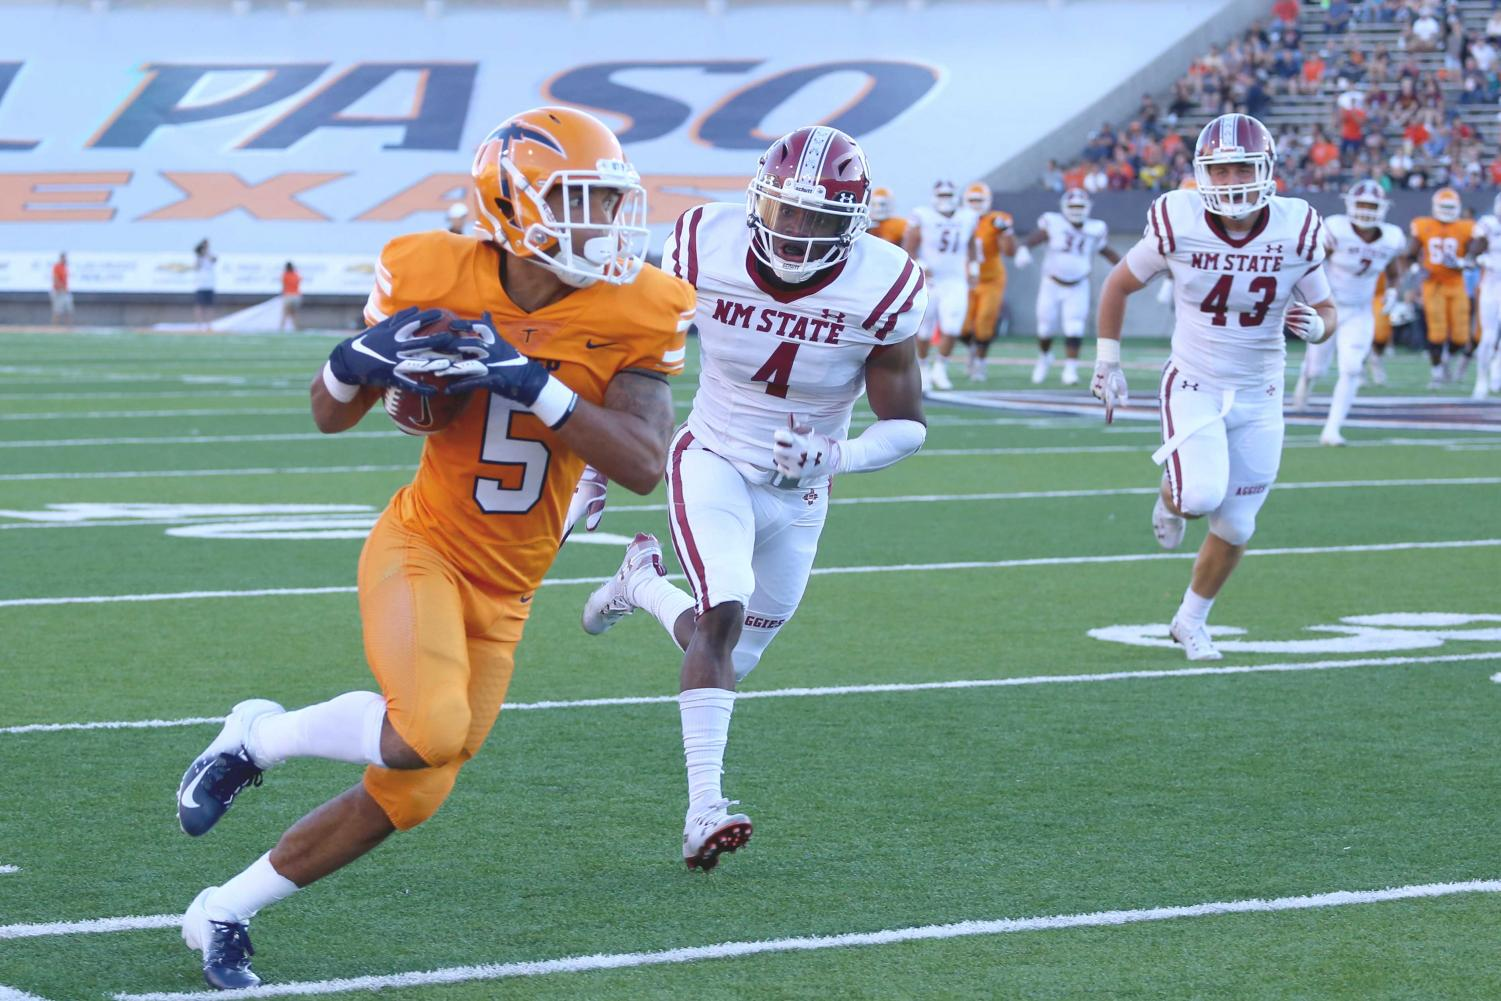 Junior+wide+receiver+Keynan+Foster+had+two+receptions+for+56+yards+as+UTEP+is+defeated+by+NMSU.+